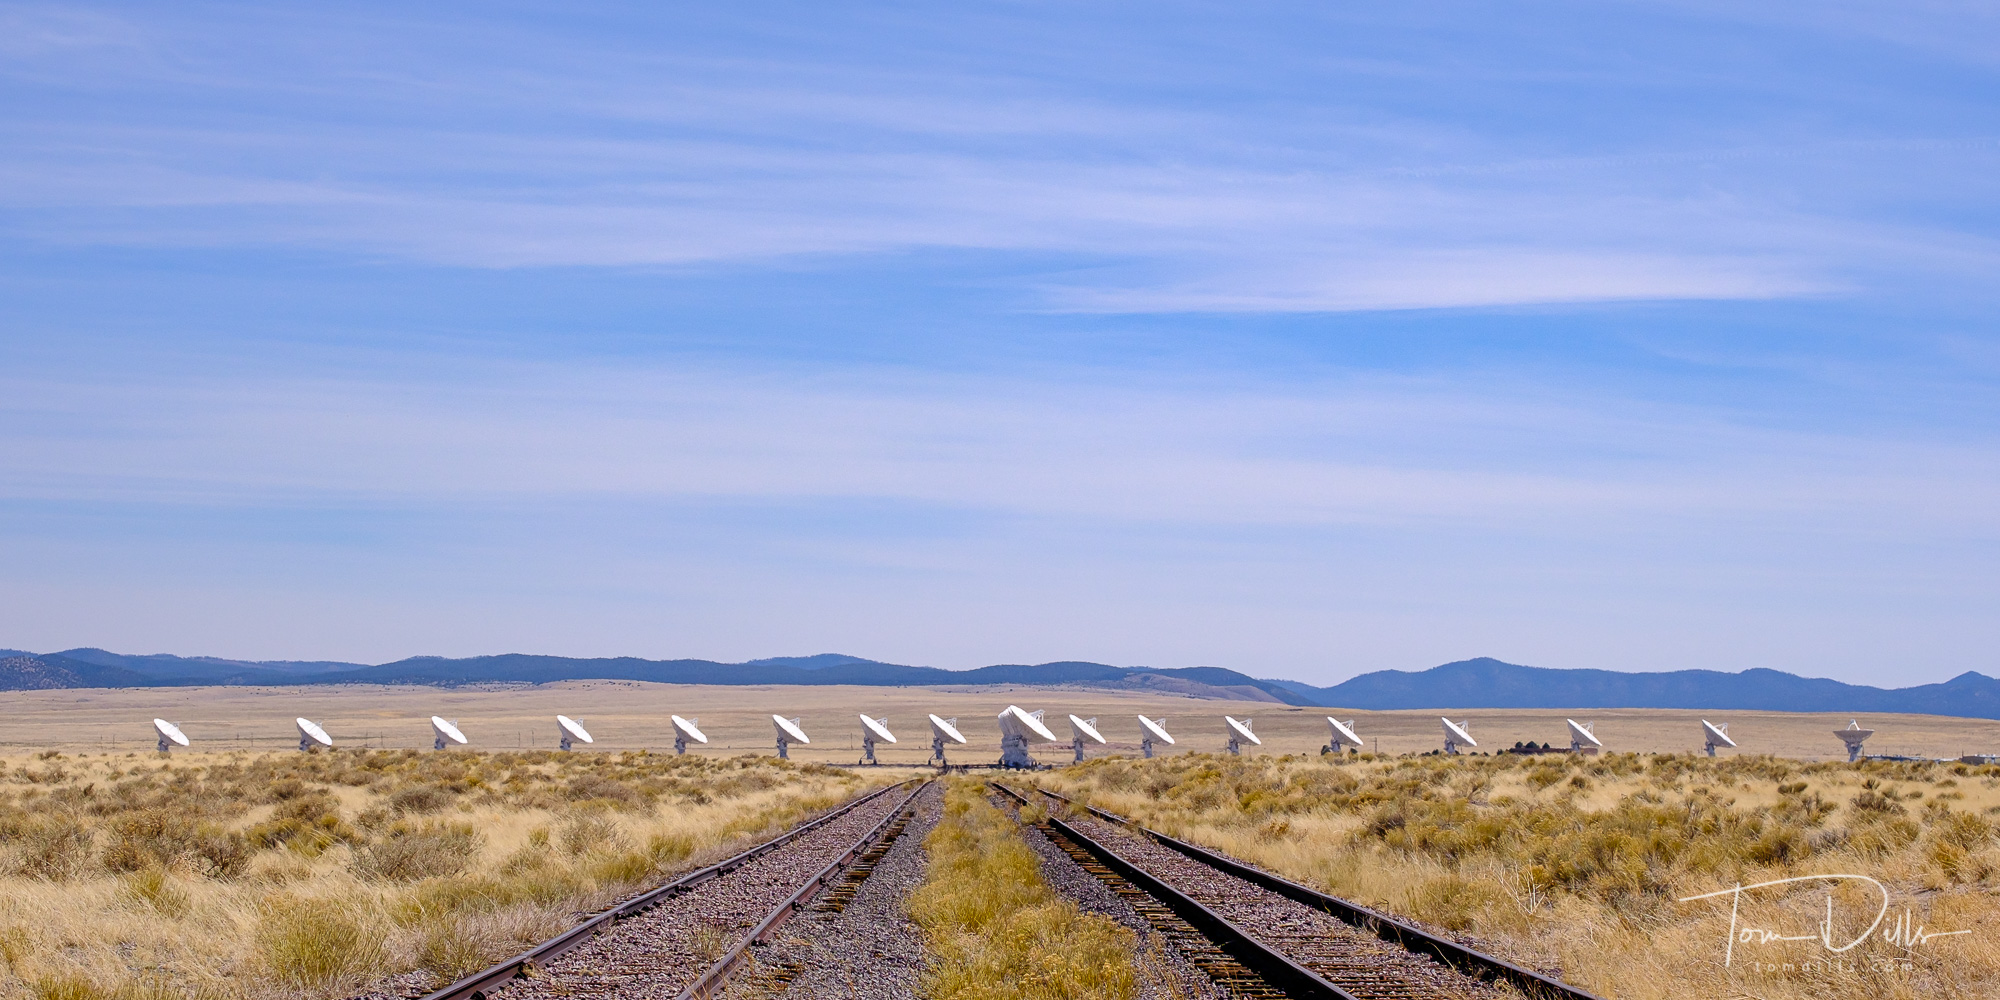 The Very Large Array at the National Radio Astronomy Observatory near Socorro, New Mexico